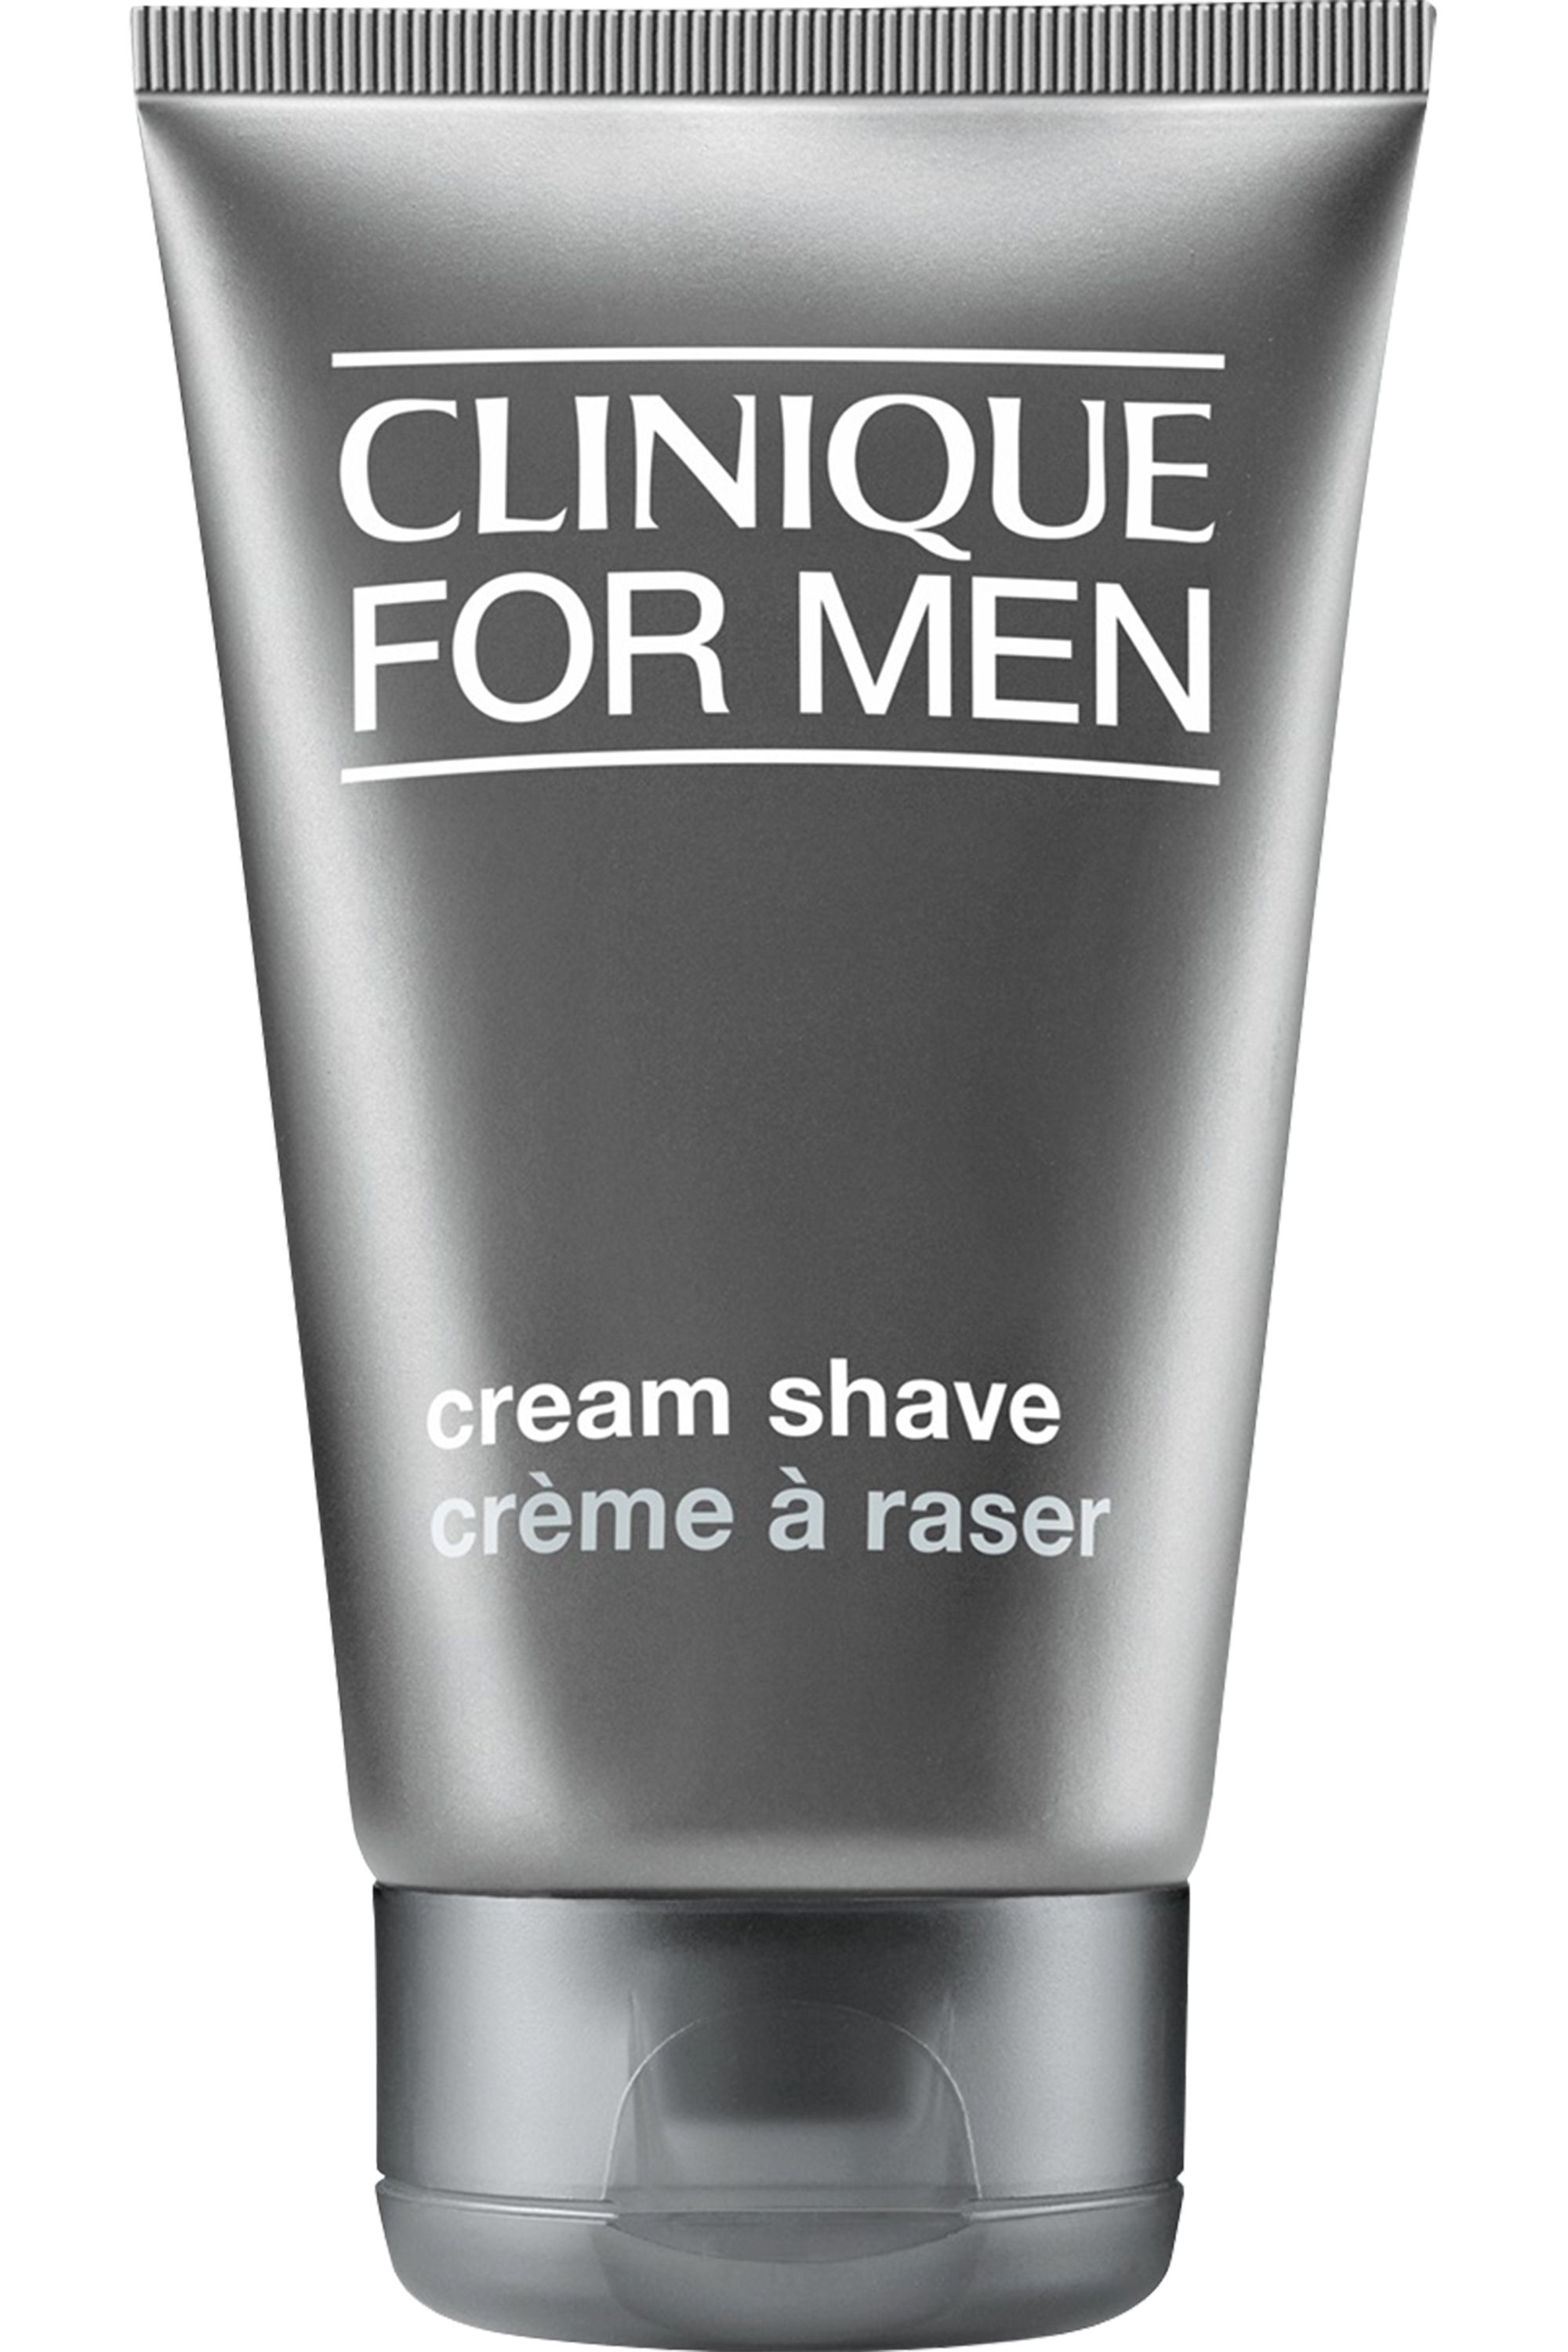 Blissim : Clinique - Crème à raser Clinique for Men - Crème à raser Clinique for Men